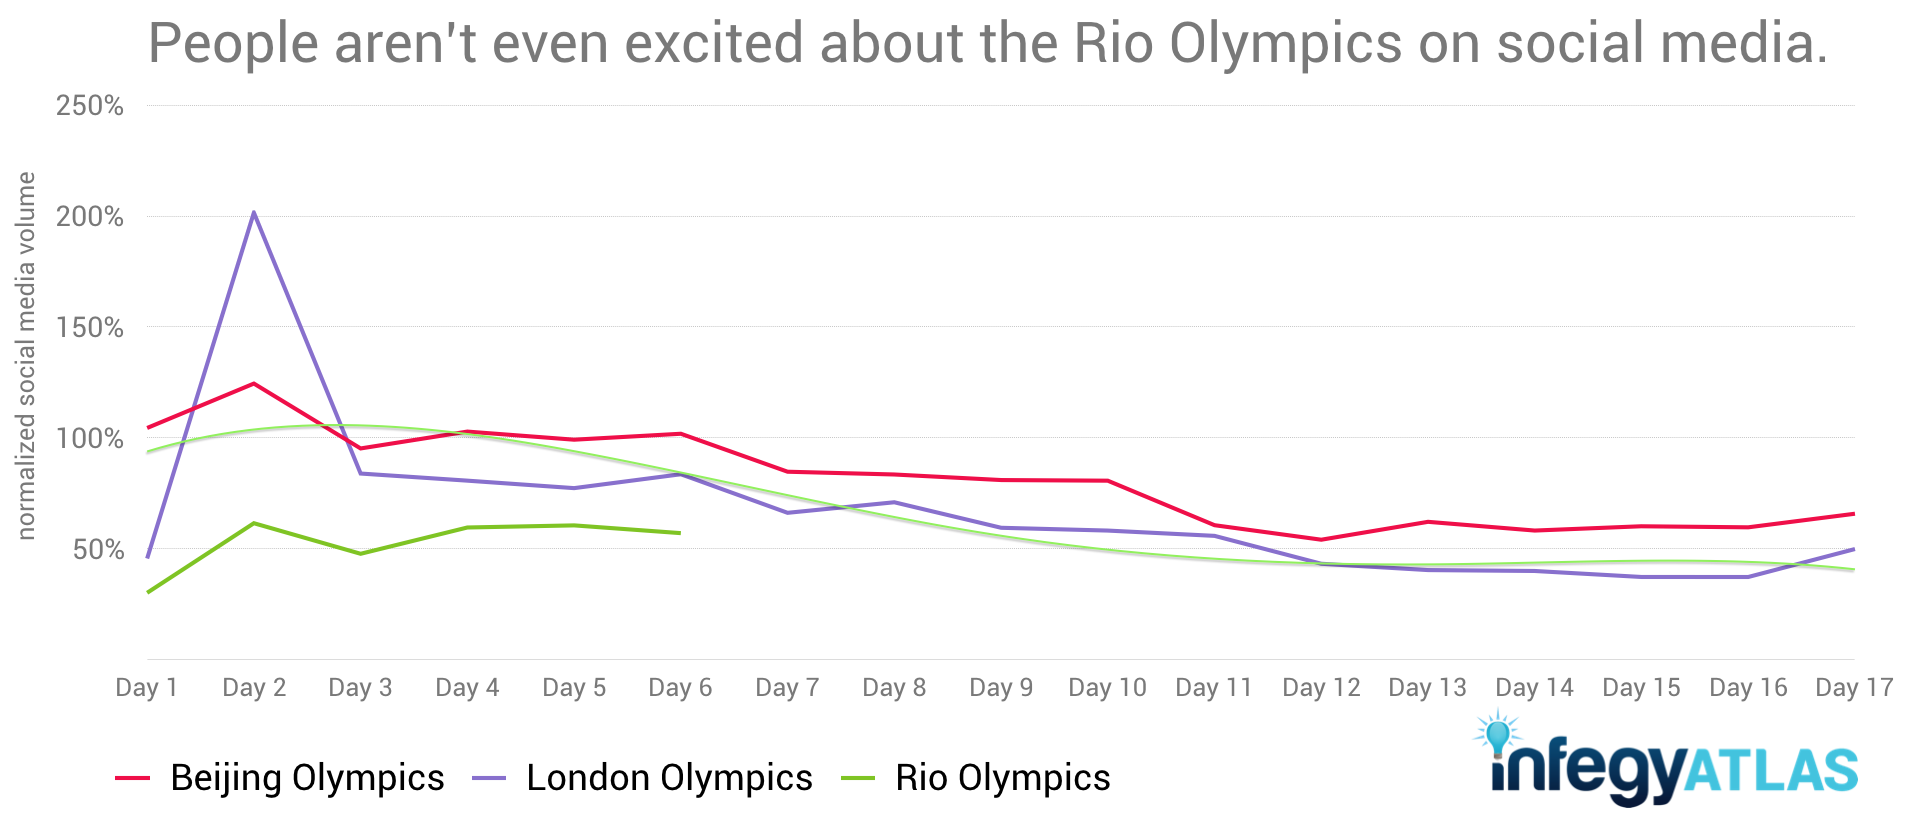 social-media-monitoring-confirms-nbc-rio-olympics-flop.png